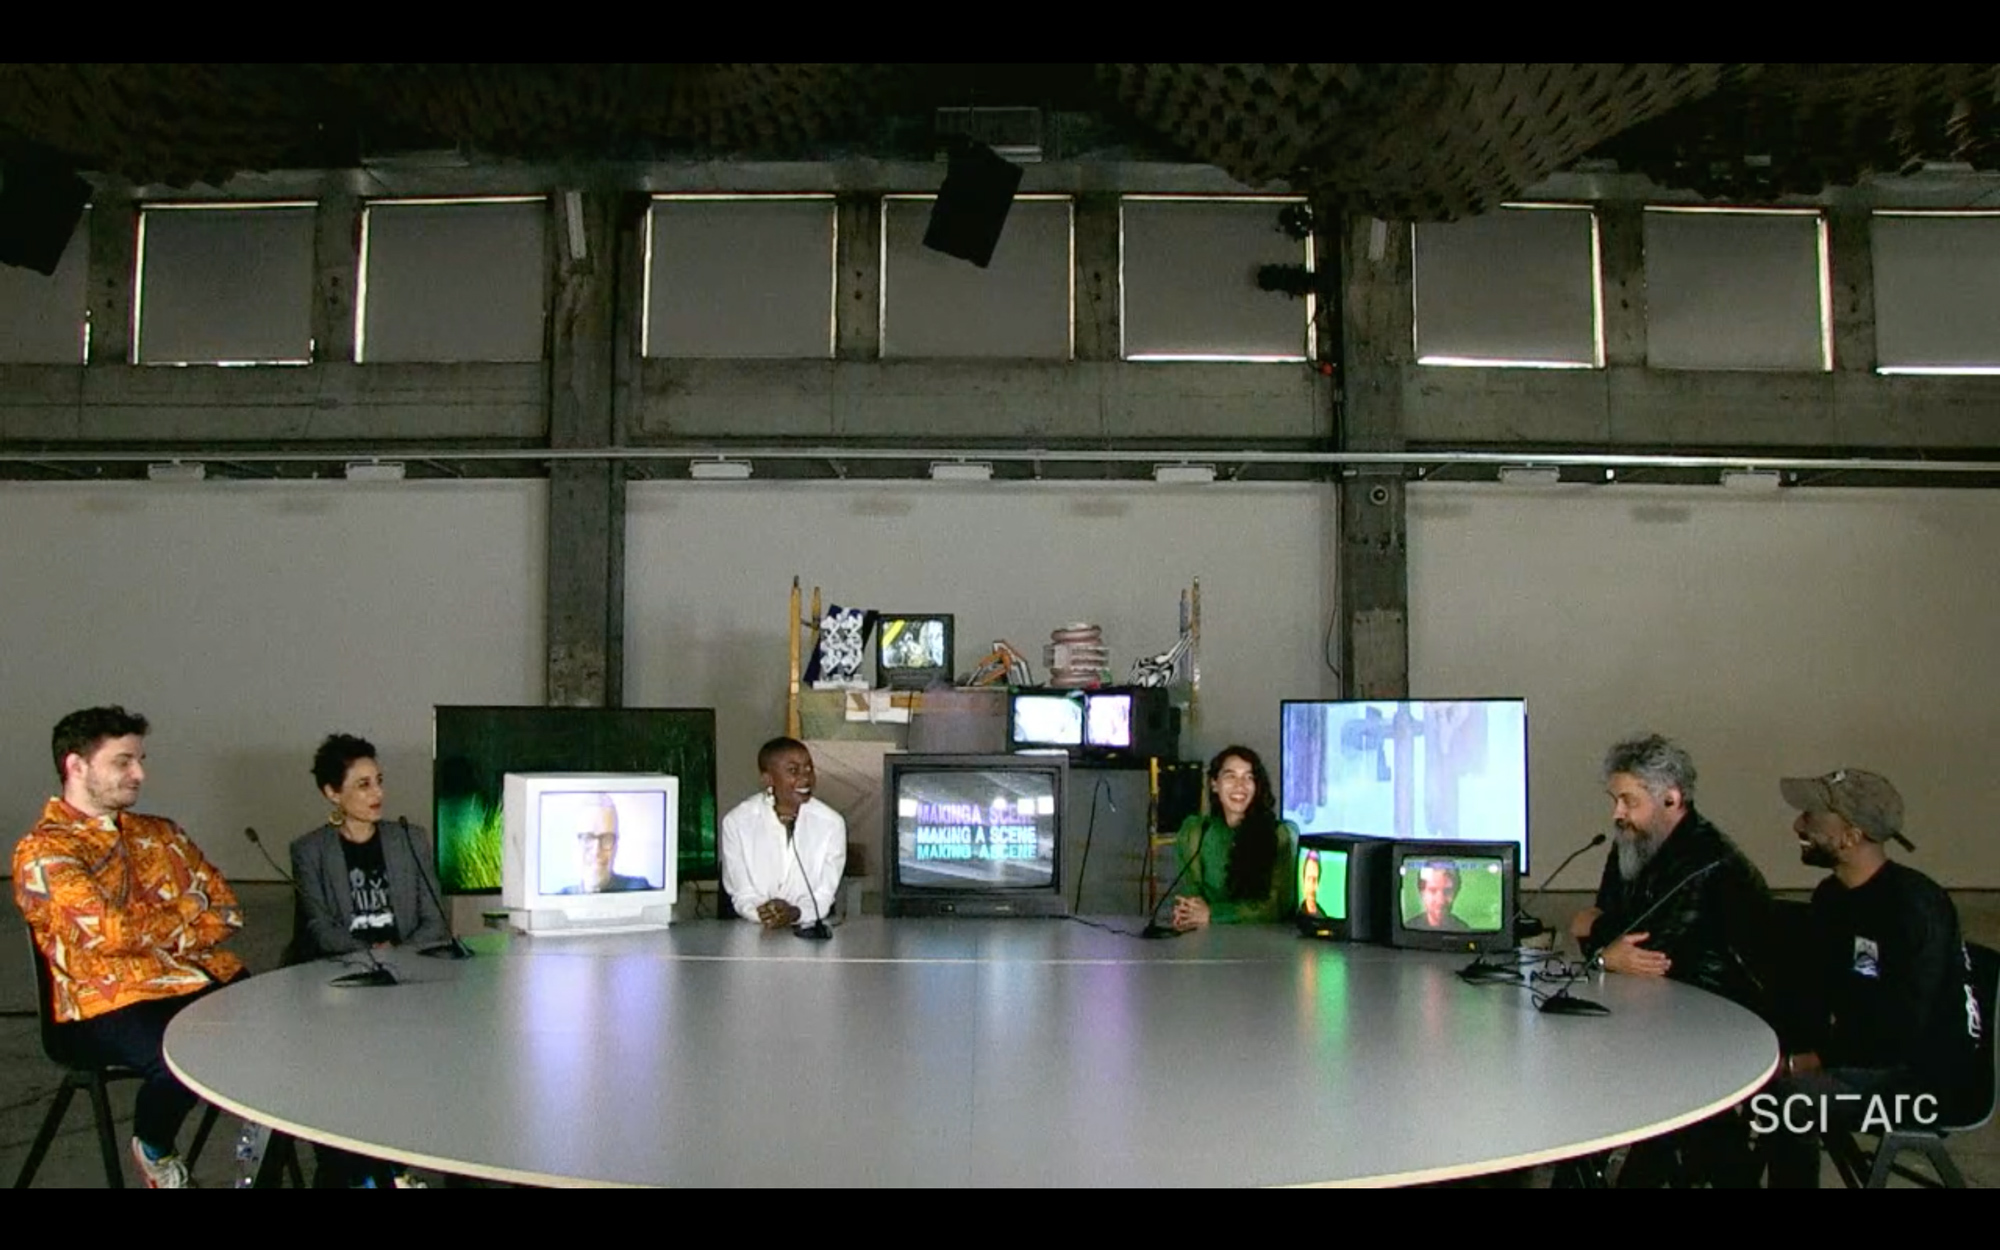 people round table tv screens